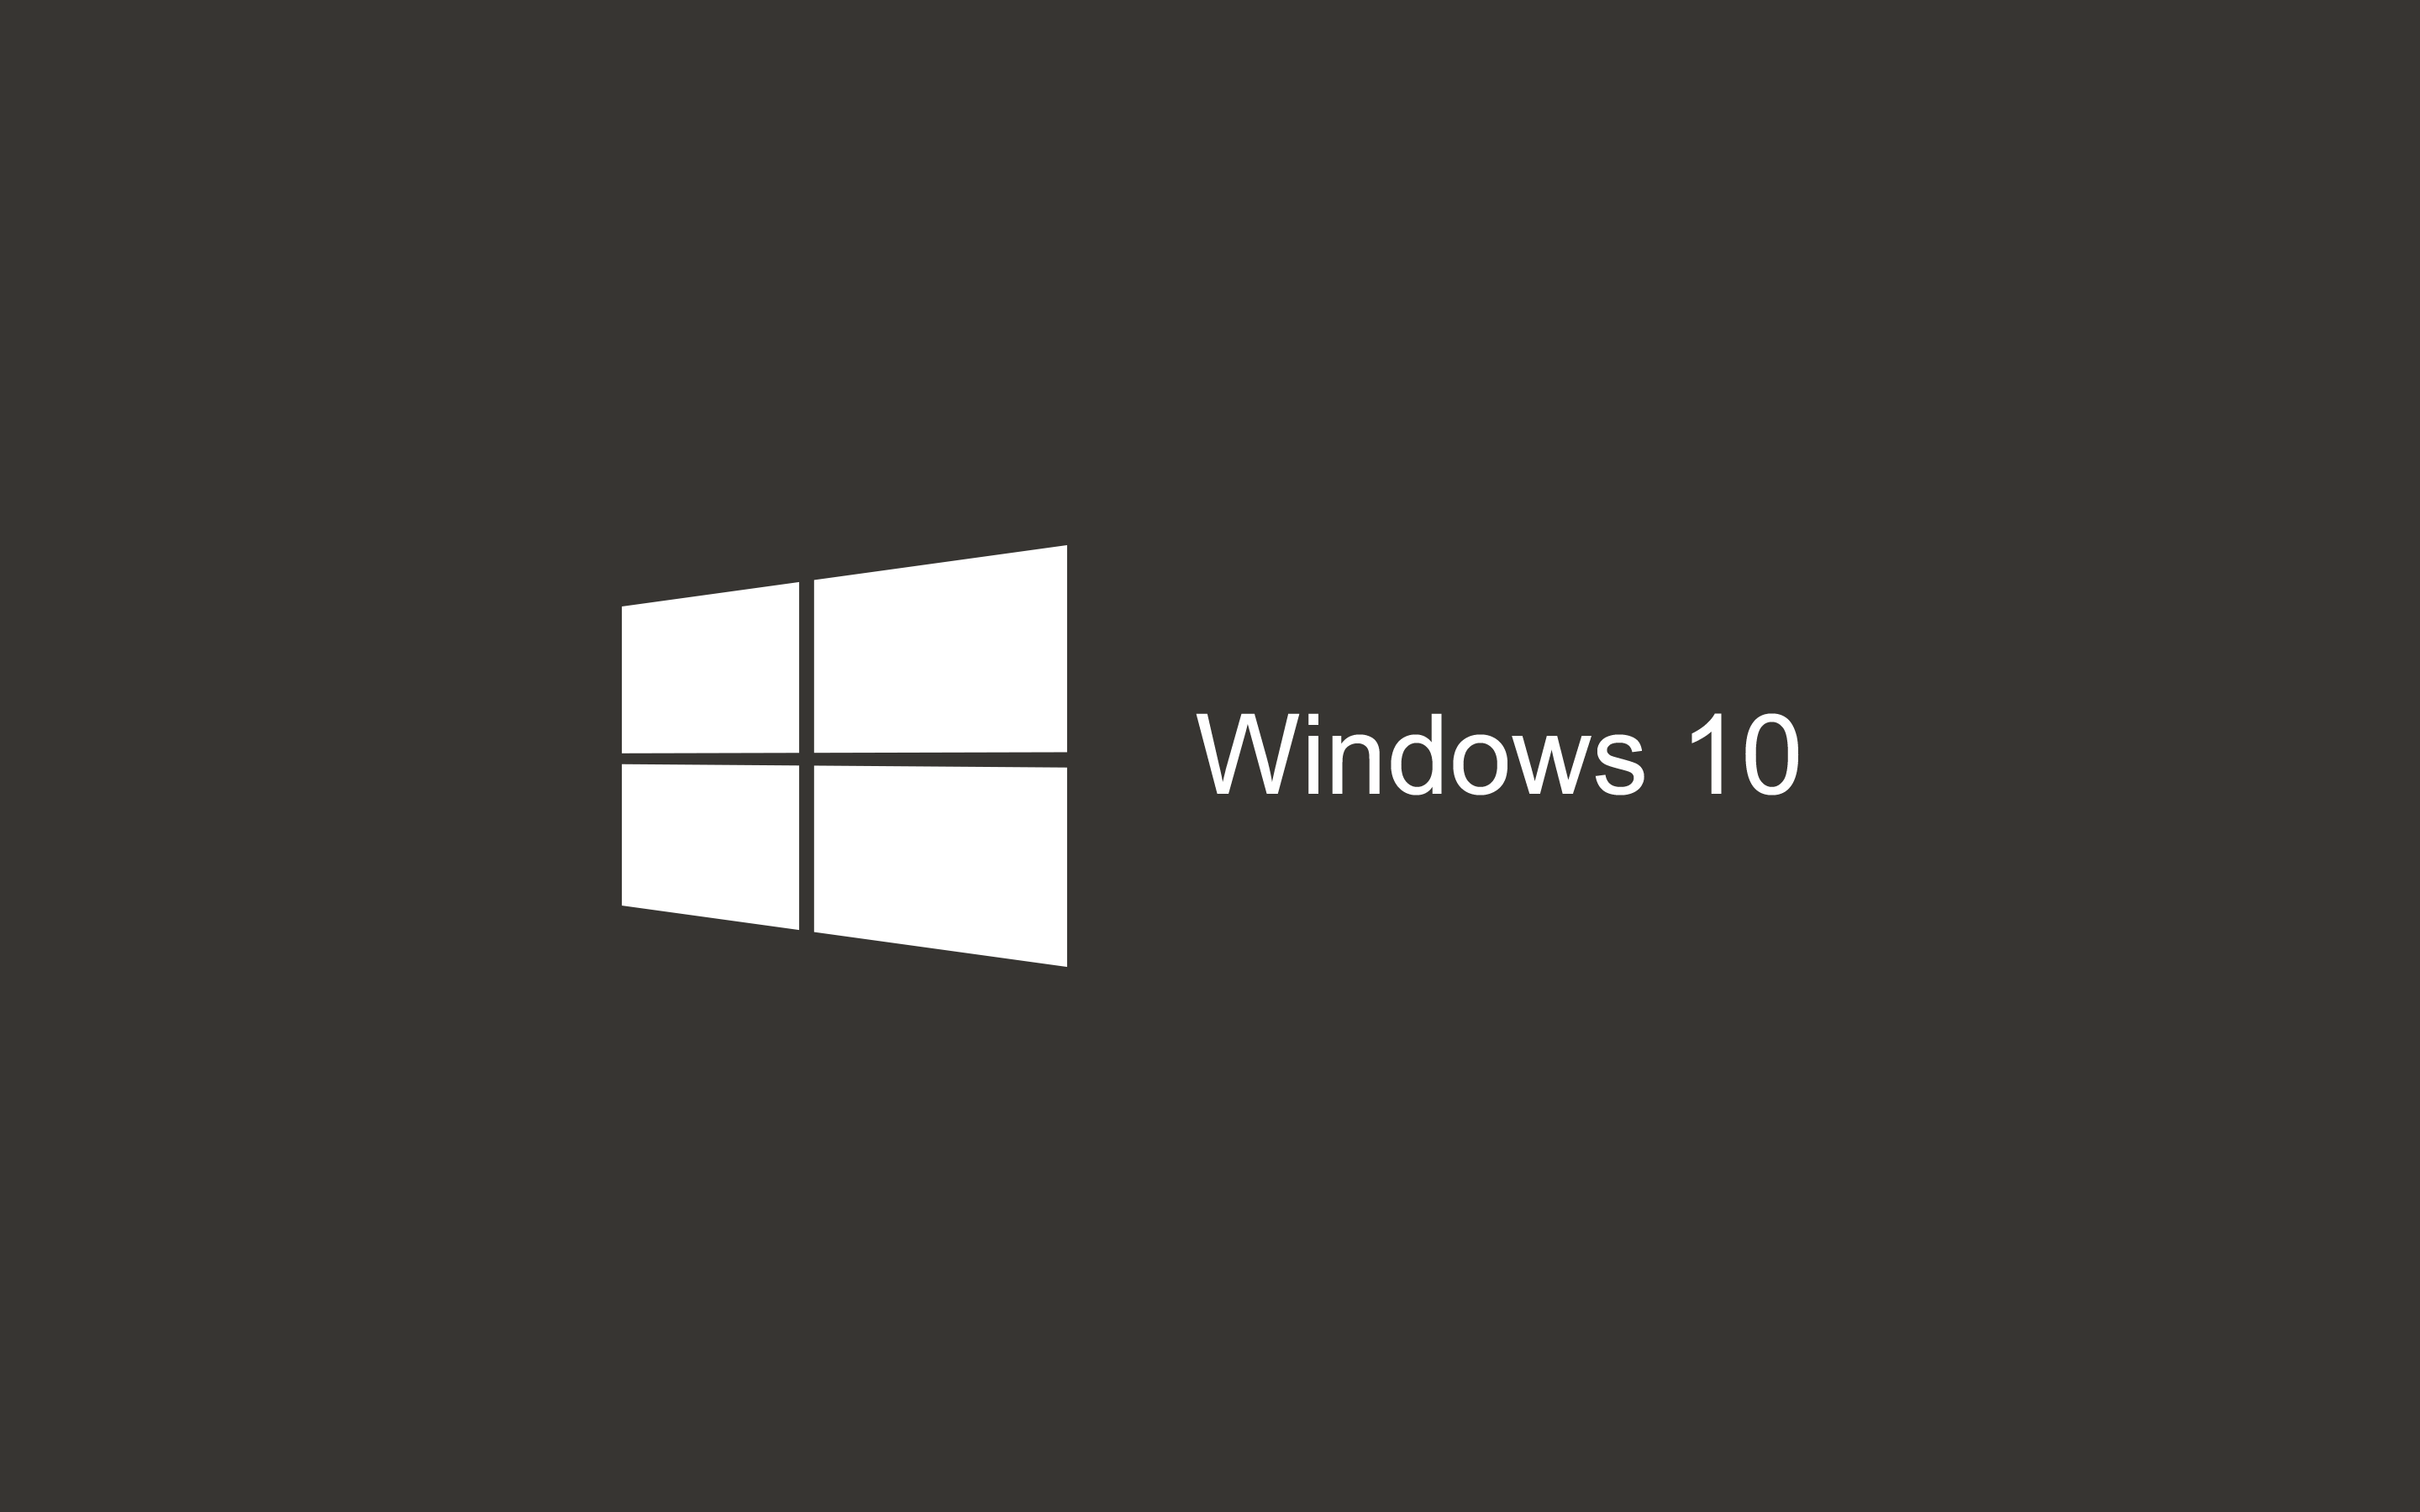 Http Windows10wallpaper Net Windows 10 Windows Wallpaper Windows 10 Logo